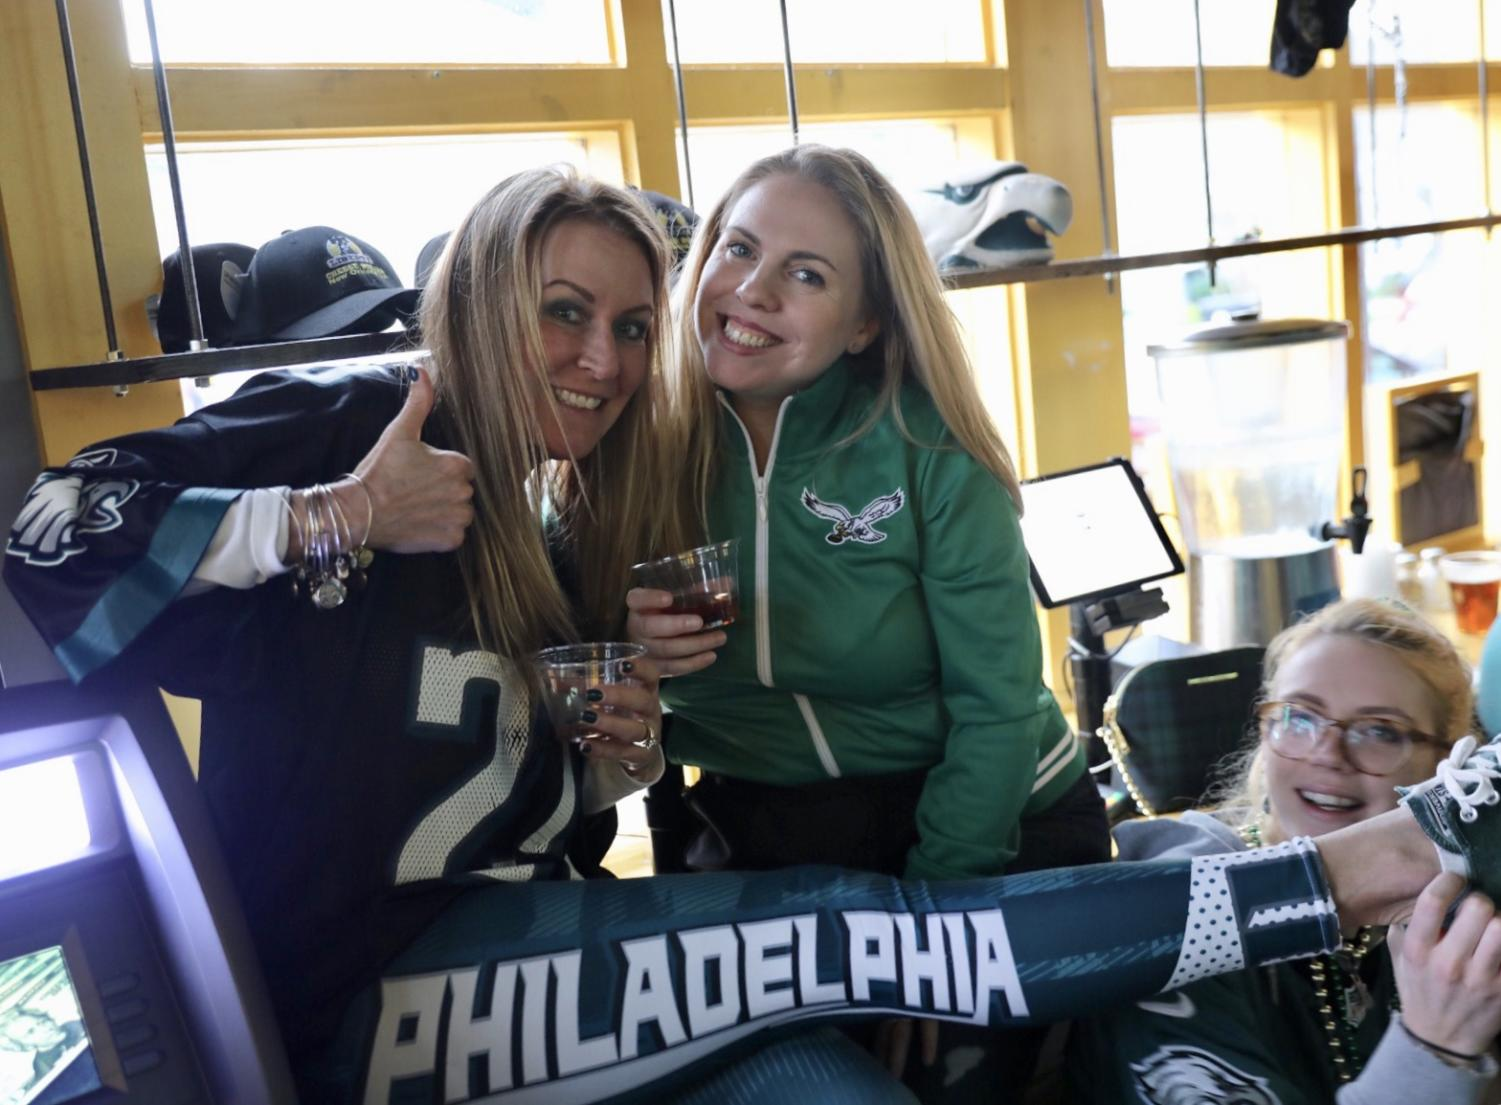 Philadelphia+fans+are+excited+to+watch+the+Eagles+vs.+Saints+game+at+Liberty+Cheesesteak.+Photo+credit%3A+Henry+Bean